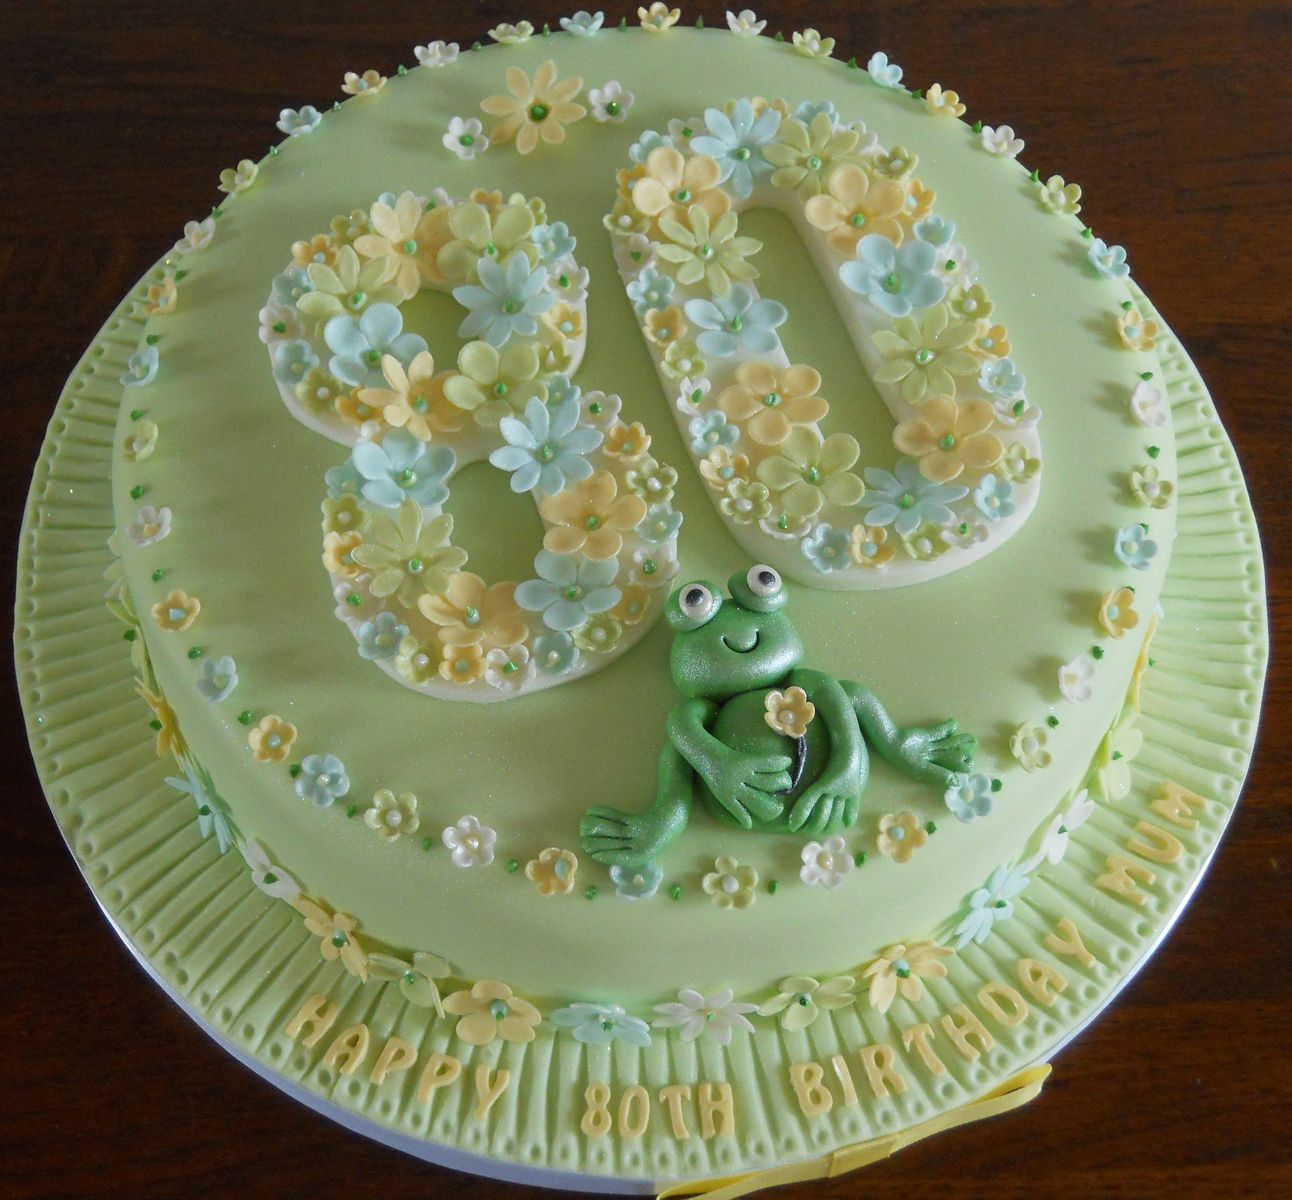 My latest creation An 80th Birthday cake with flowers and a frog